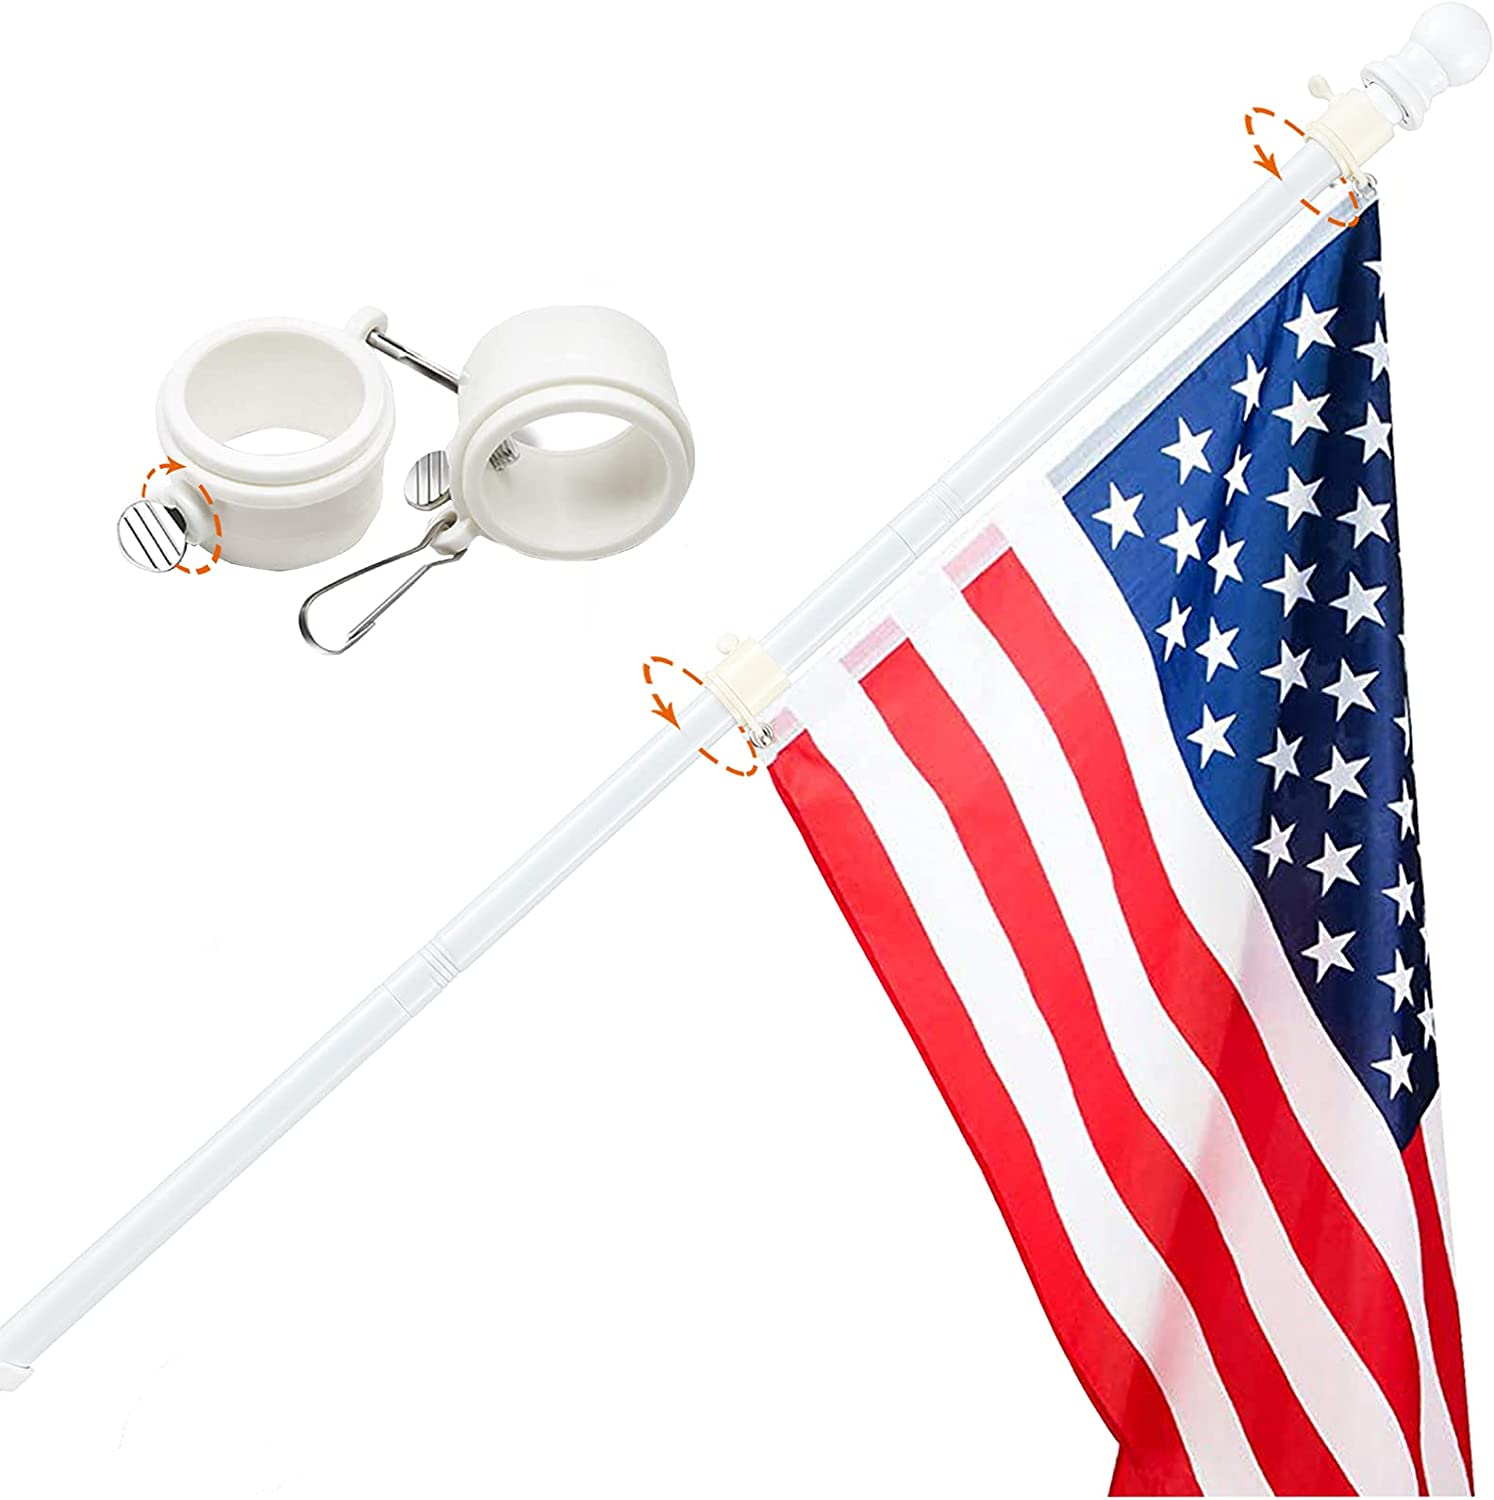 Harrms Flag Pole 5 FT Japan's largest assortment Max 78% OFF Heavy Steel Without Duty Br Kit White